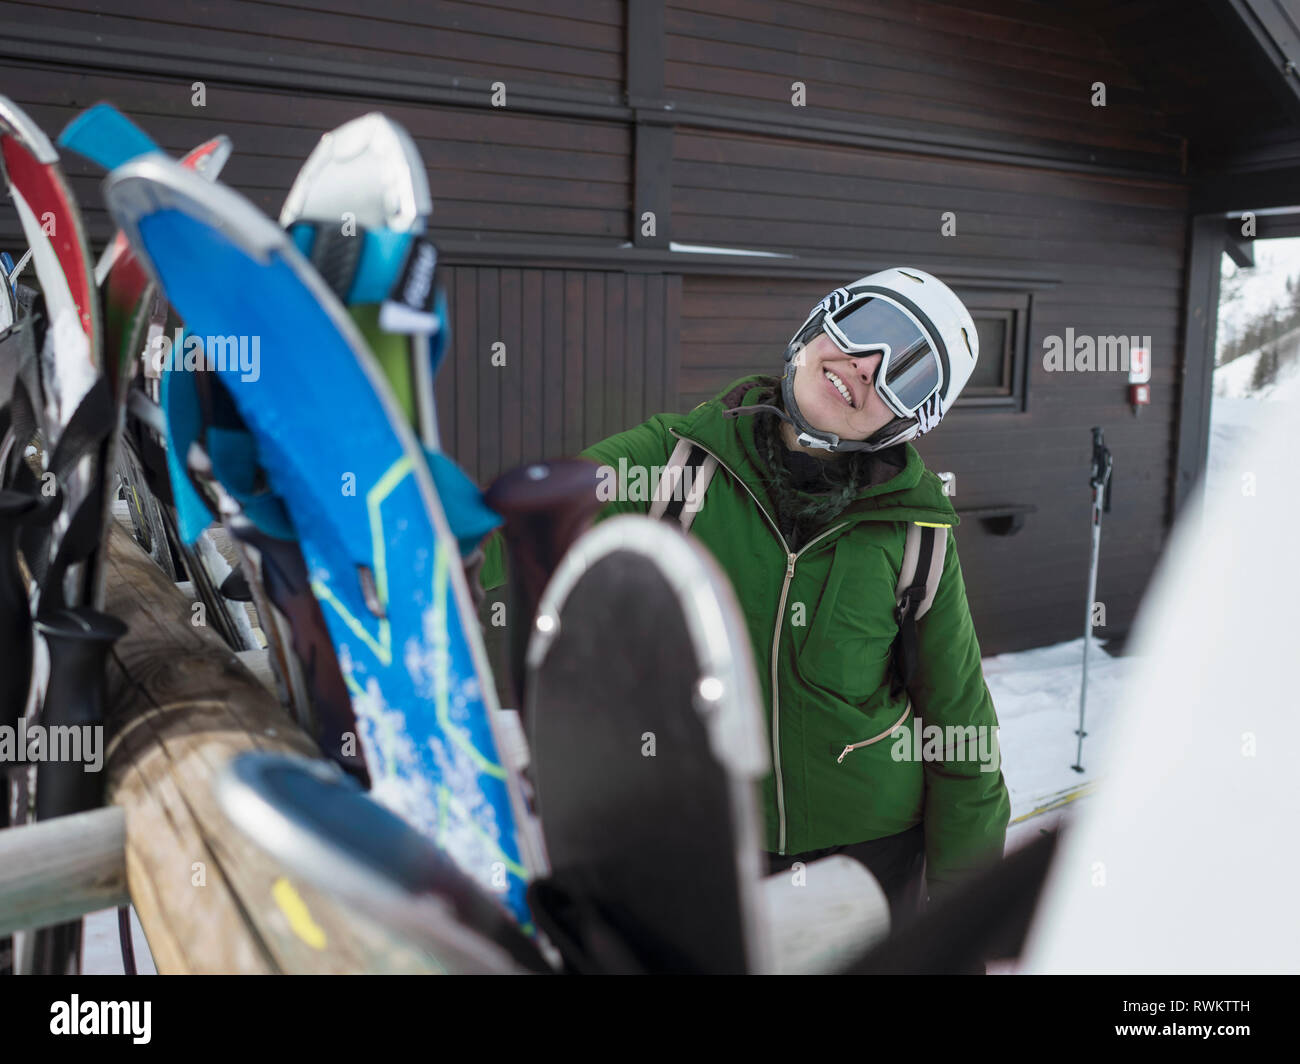 Young woman skier wearing helmet and ski goggles outside ski hut,  portrait, Alpe Ciamporino, Piemonte, Italy - Stock Image